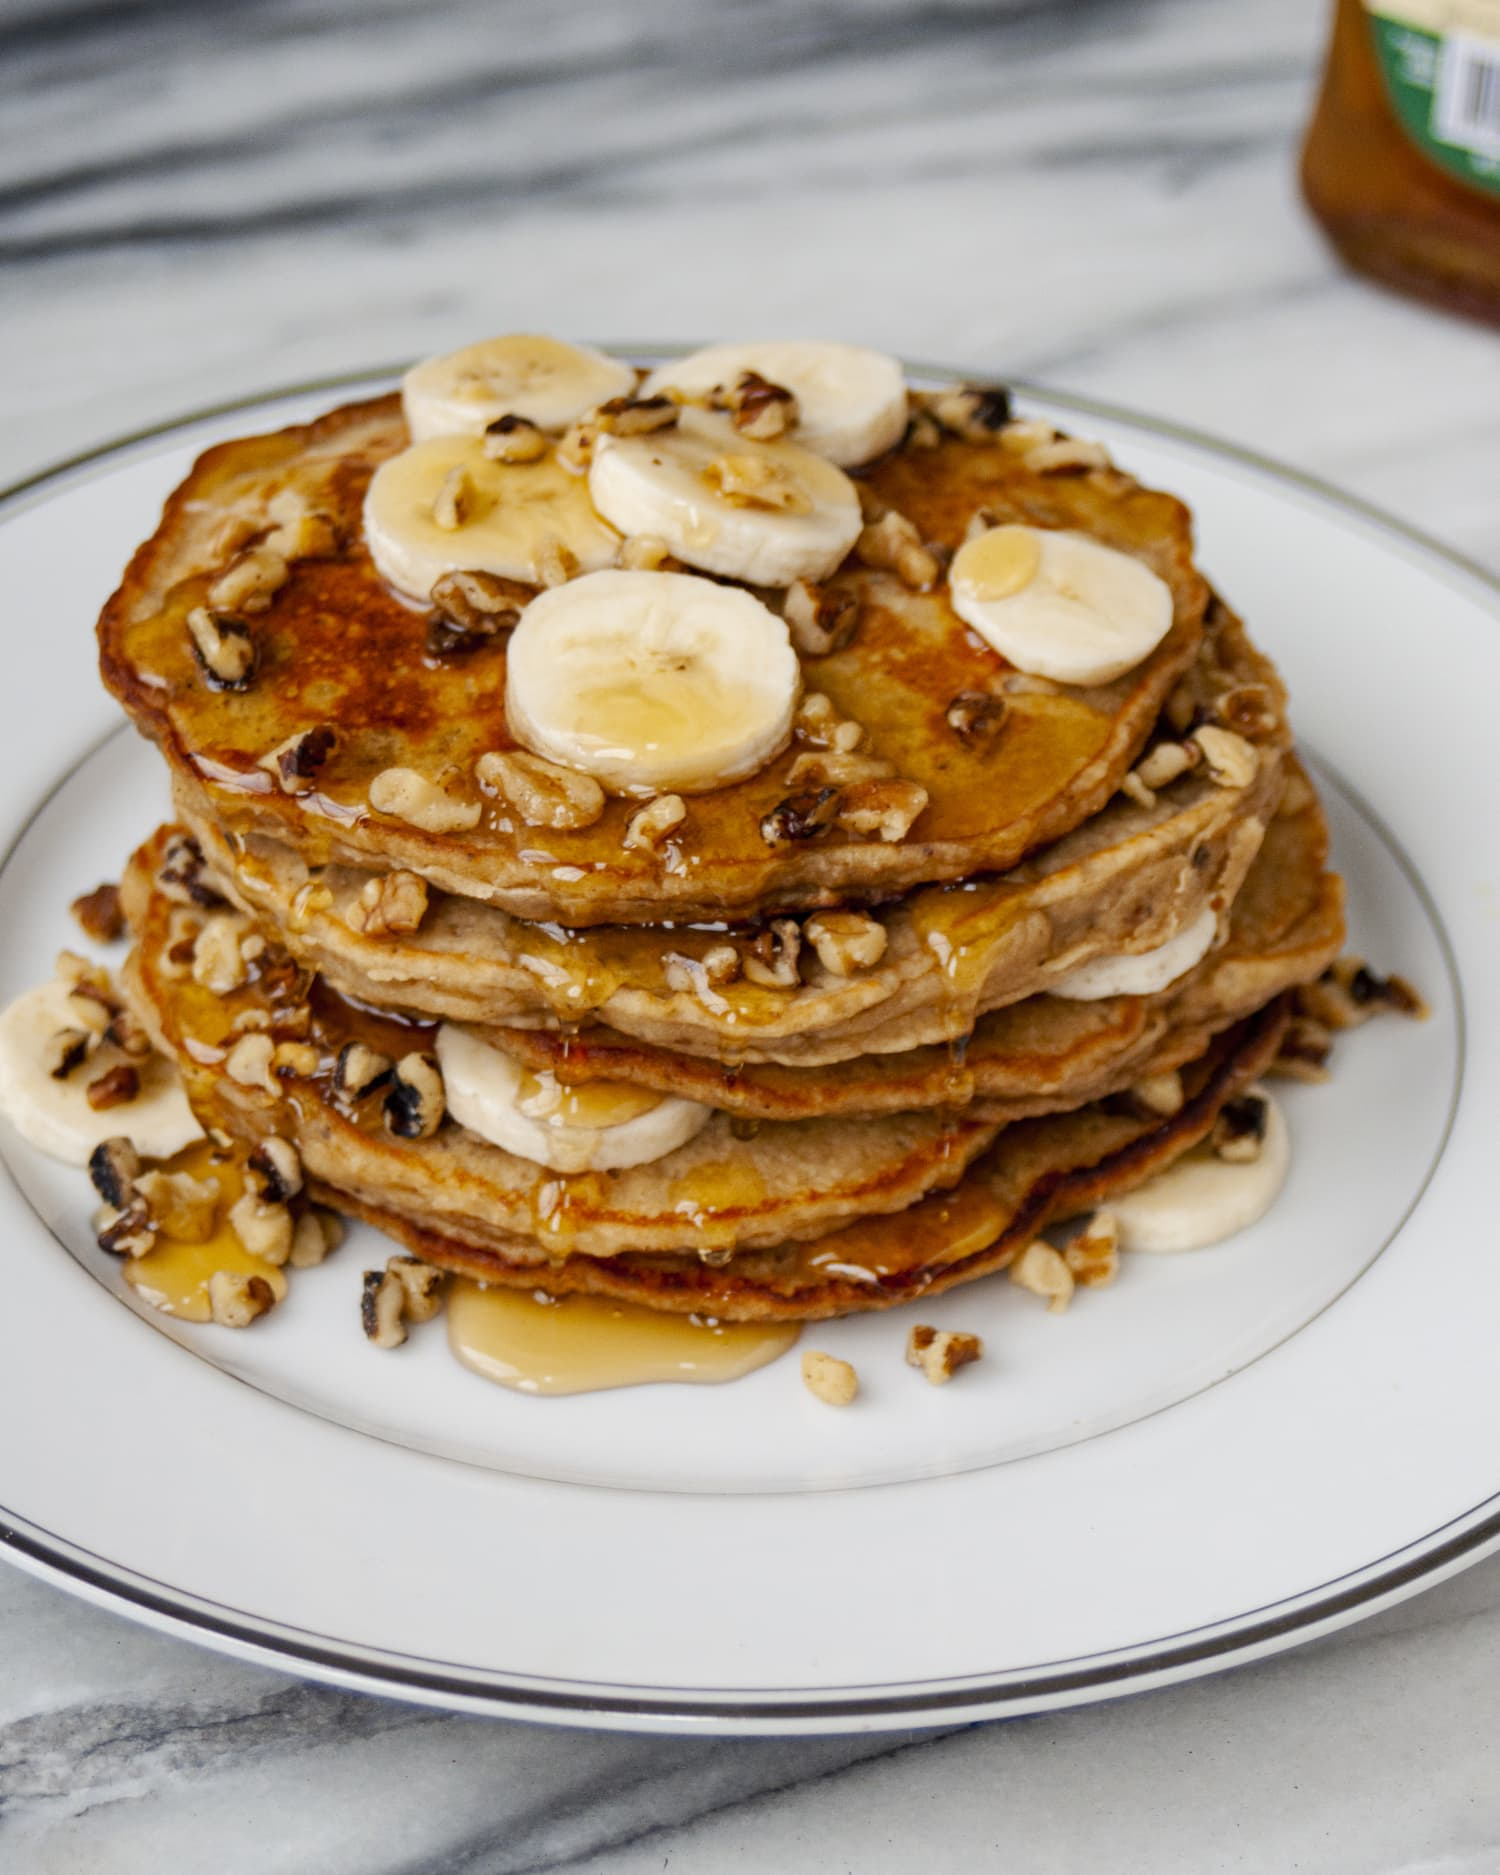 Crispy, Buttery Banana Bread Pancakes Will Satisfy Your Every Craving